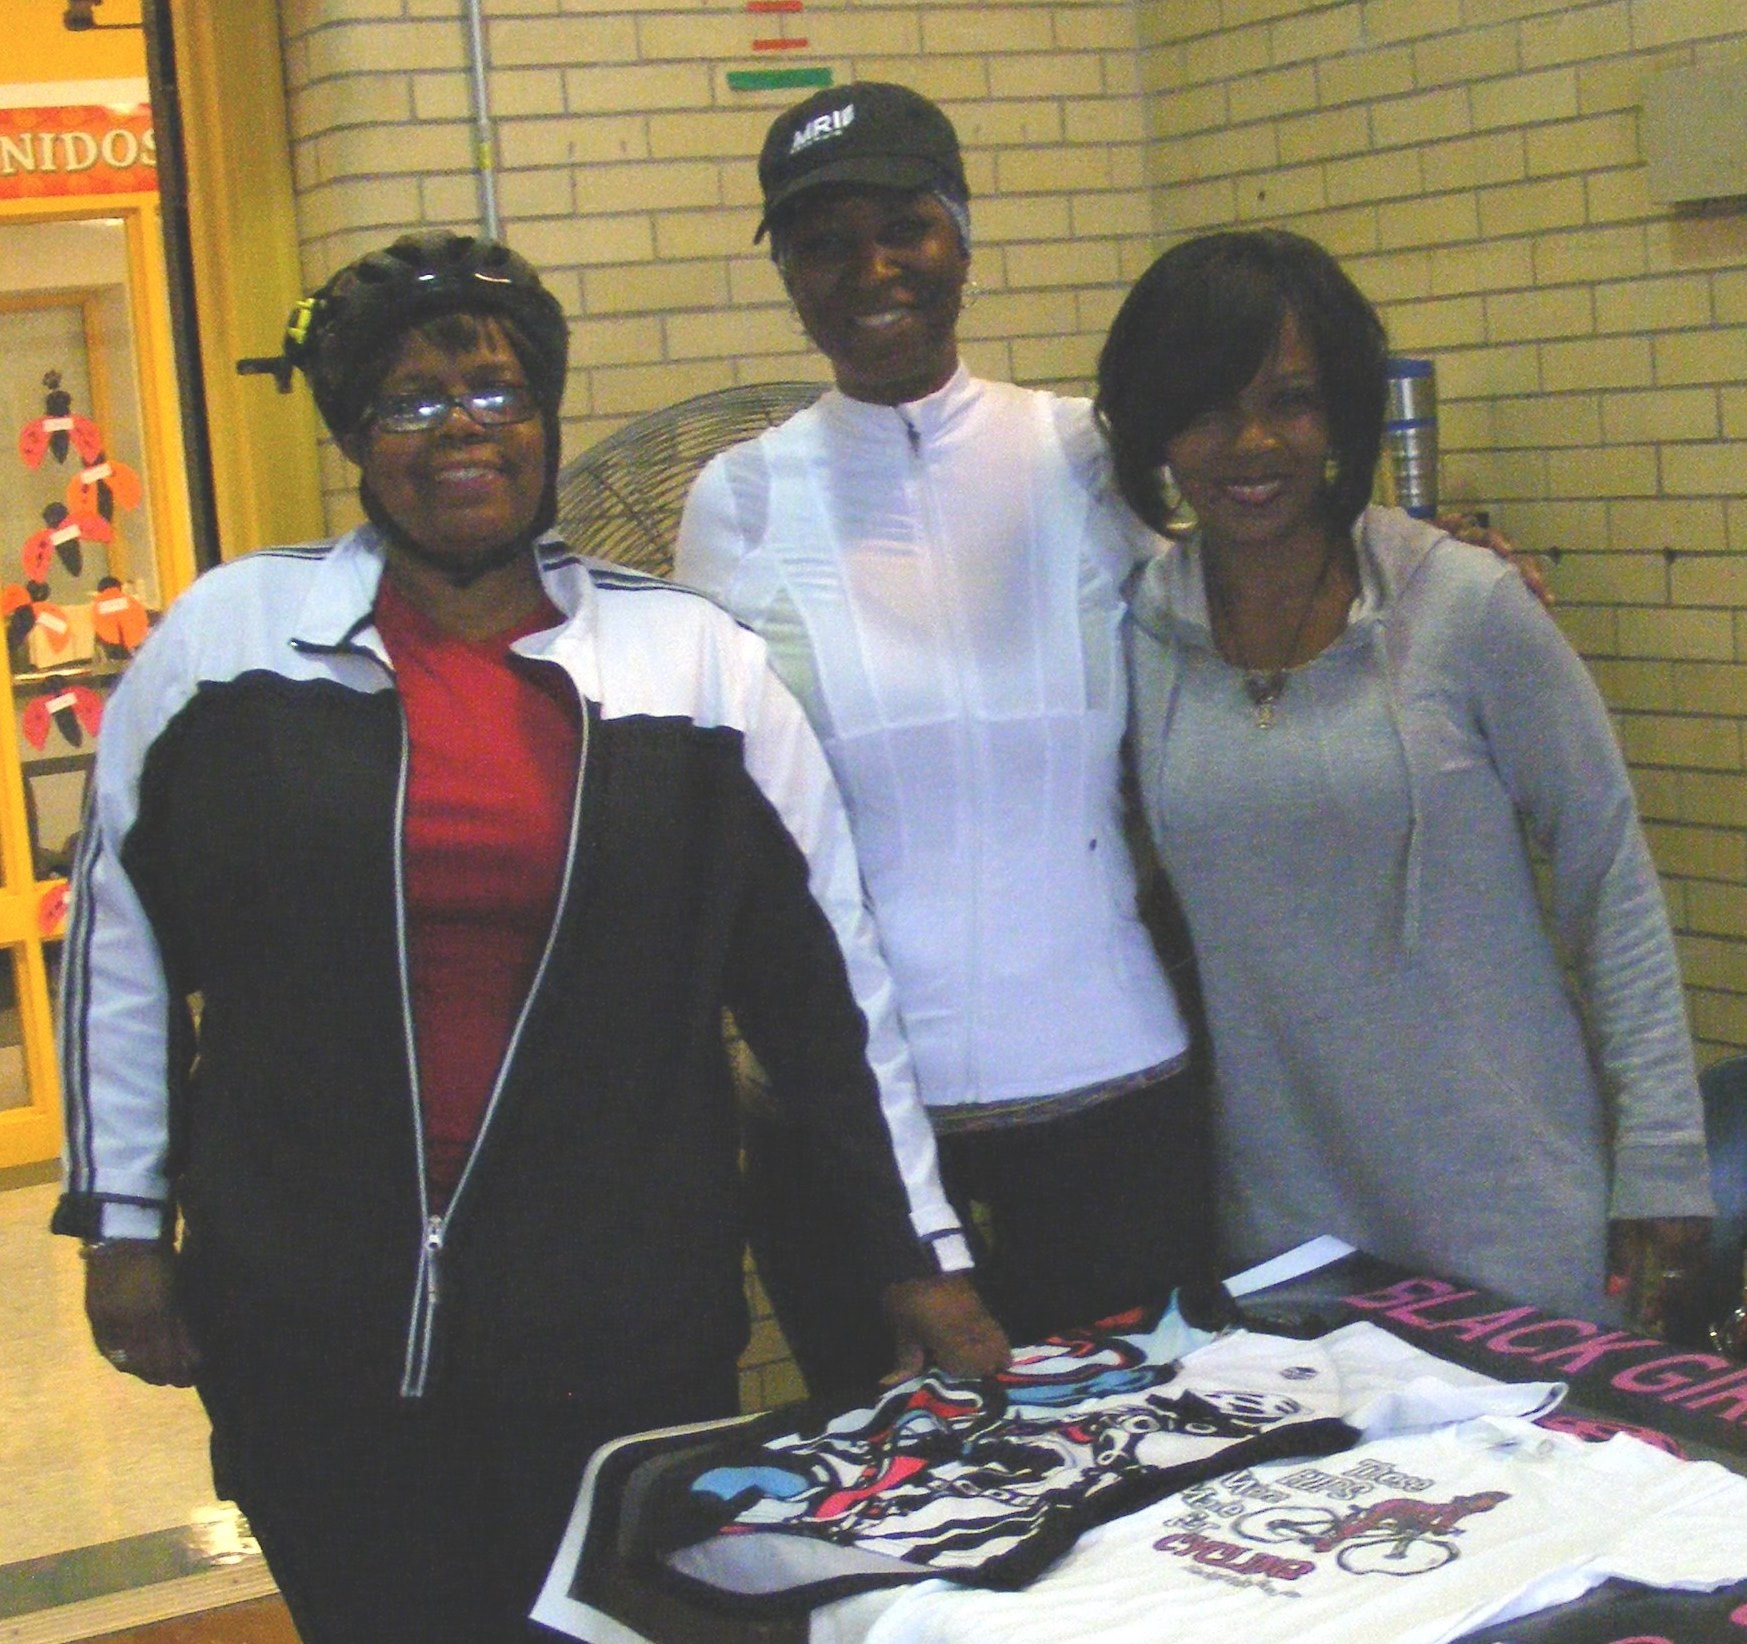 Representatives from Black Girls do Bike hosted an info table